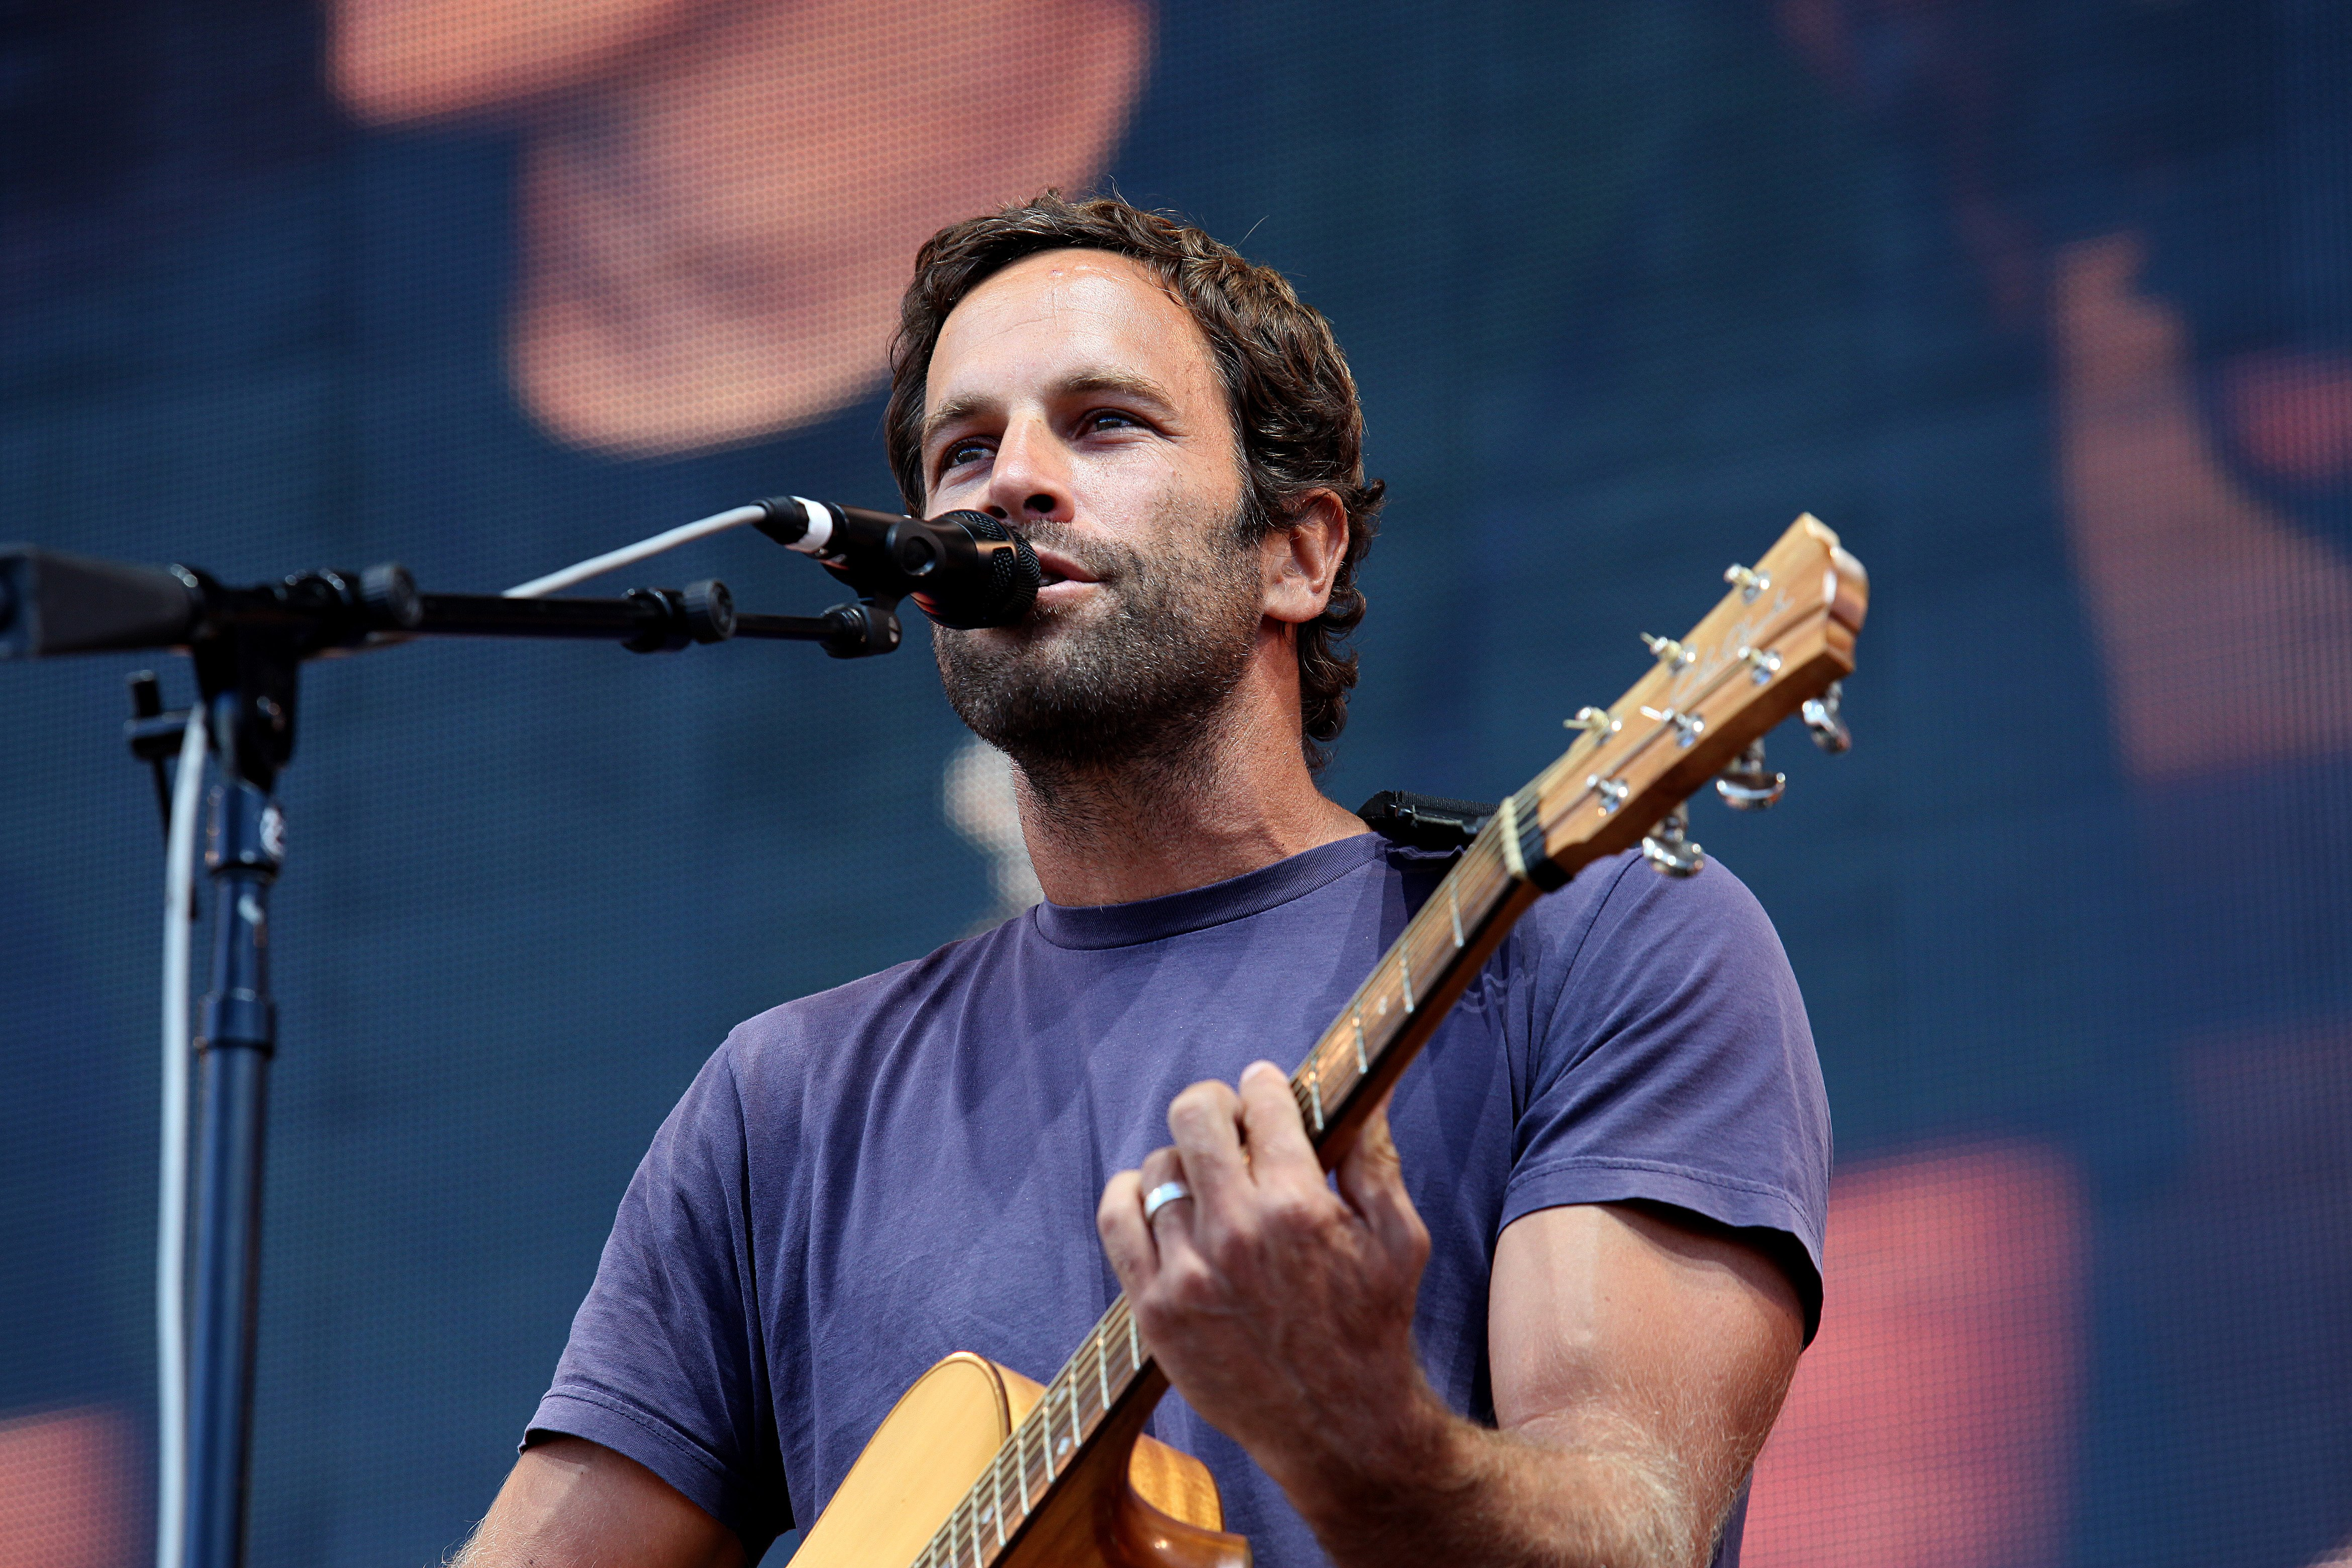 Jack Johnson performs at FirstMerit Bank Pavilion at Northerly Island during 'Farm Aid 30' in Chicago on Sept. 19, 2015.